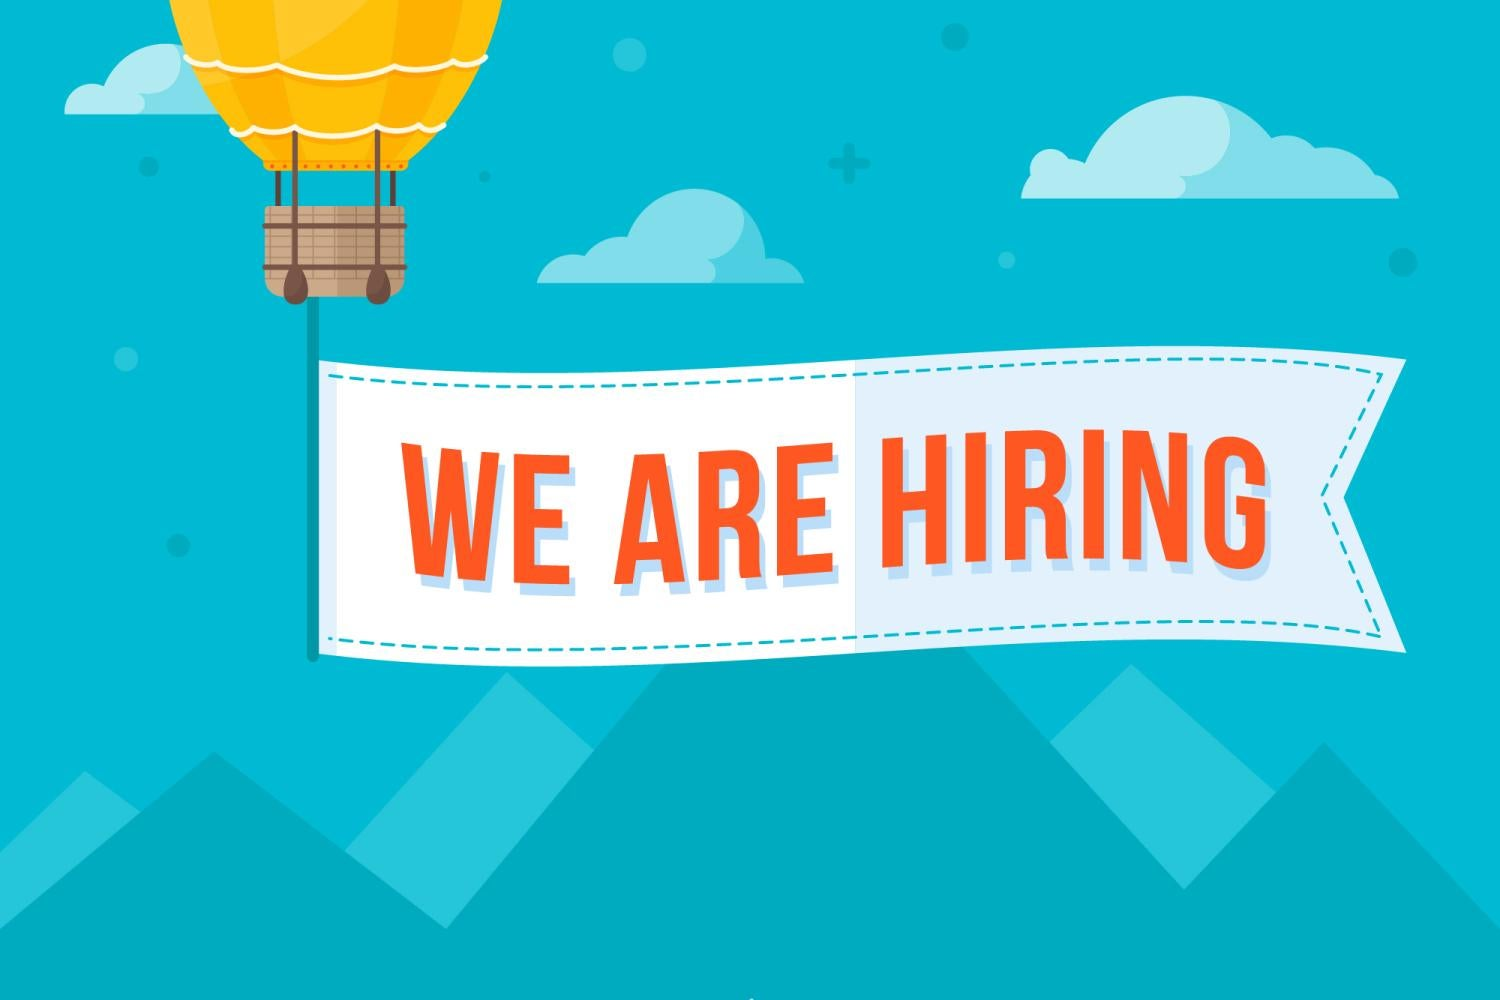 We Are Hiring sign attached to hot-air balloon